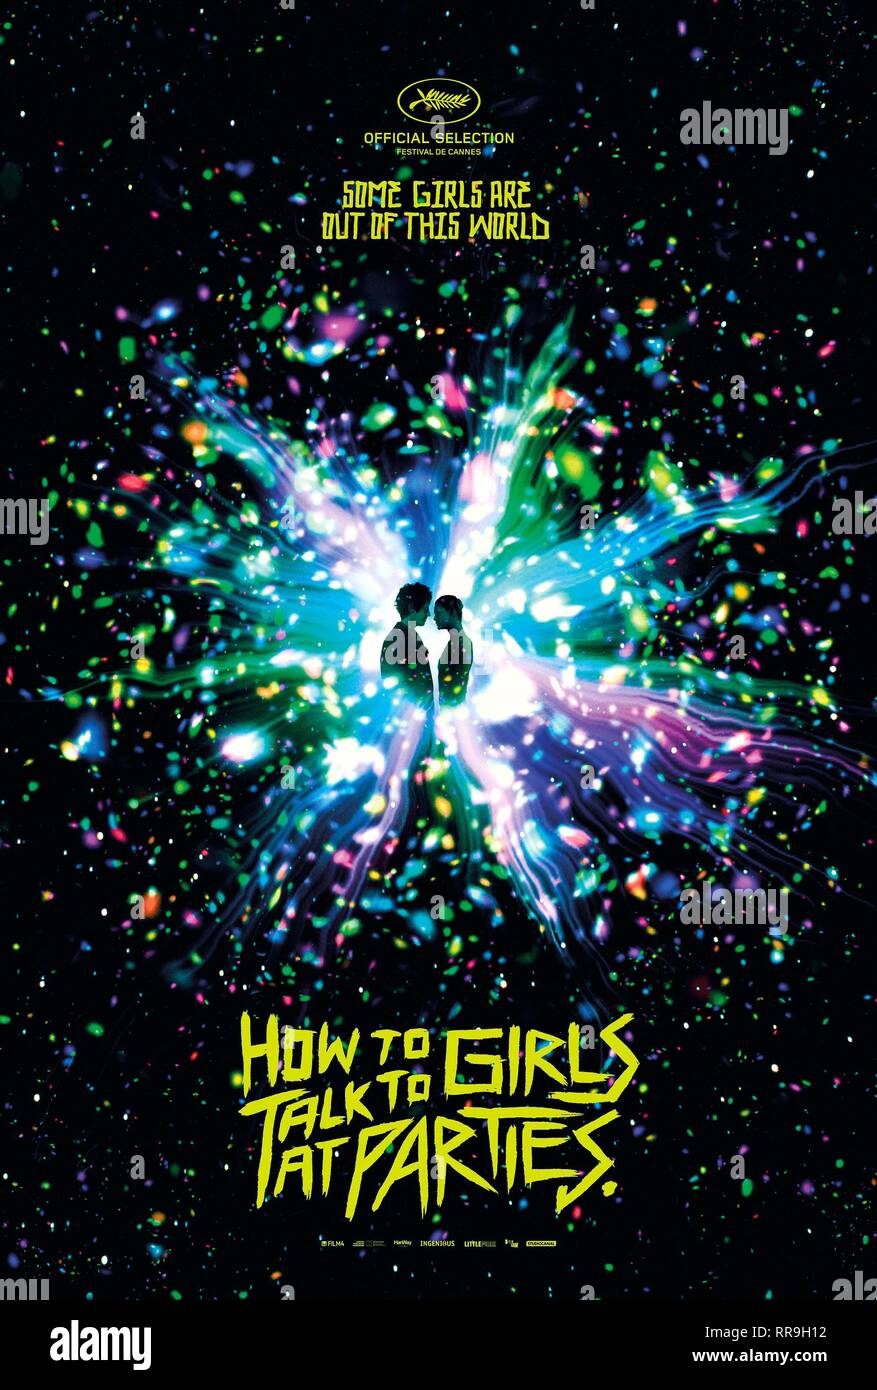 HOW TO TALK TO GIRLS AT PARTIES, MOVIE POSTER, 2017 - Stock Image